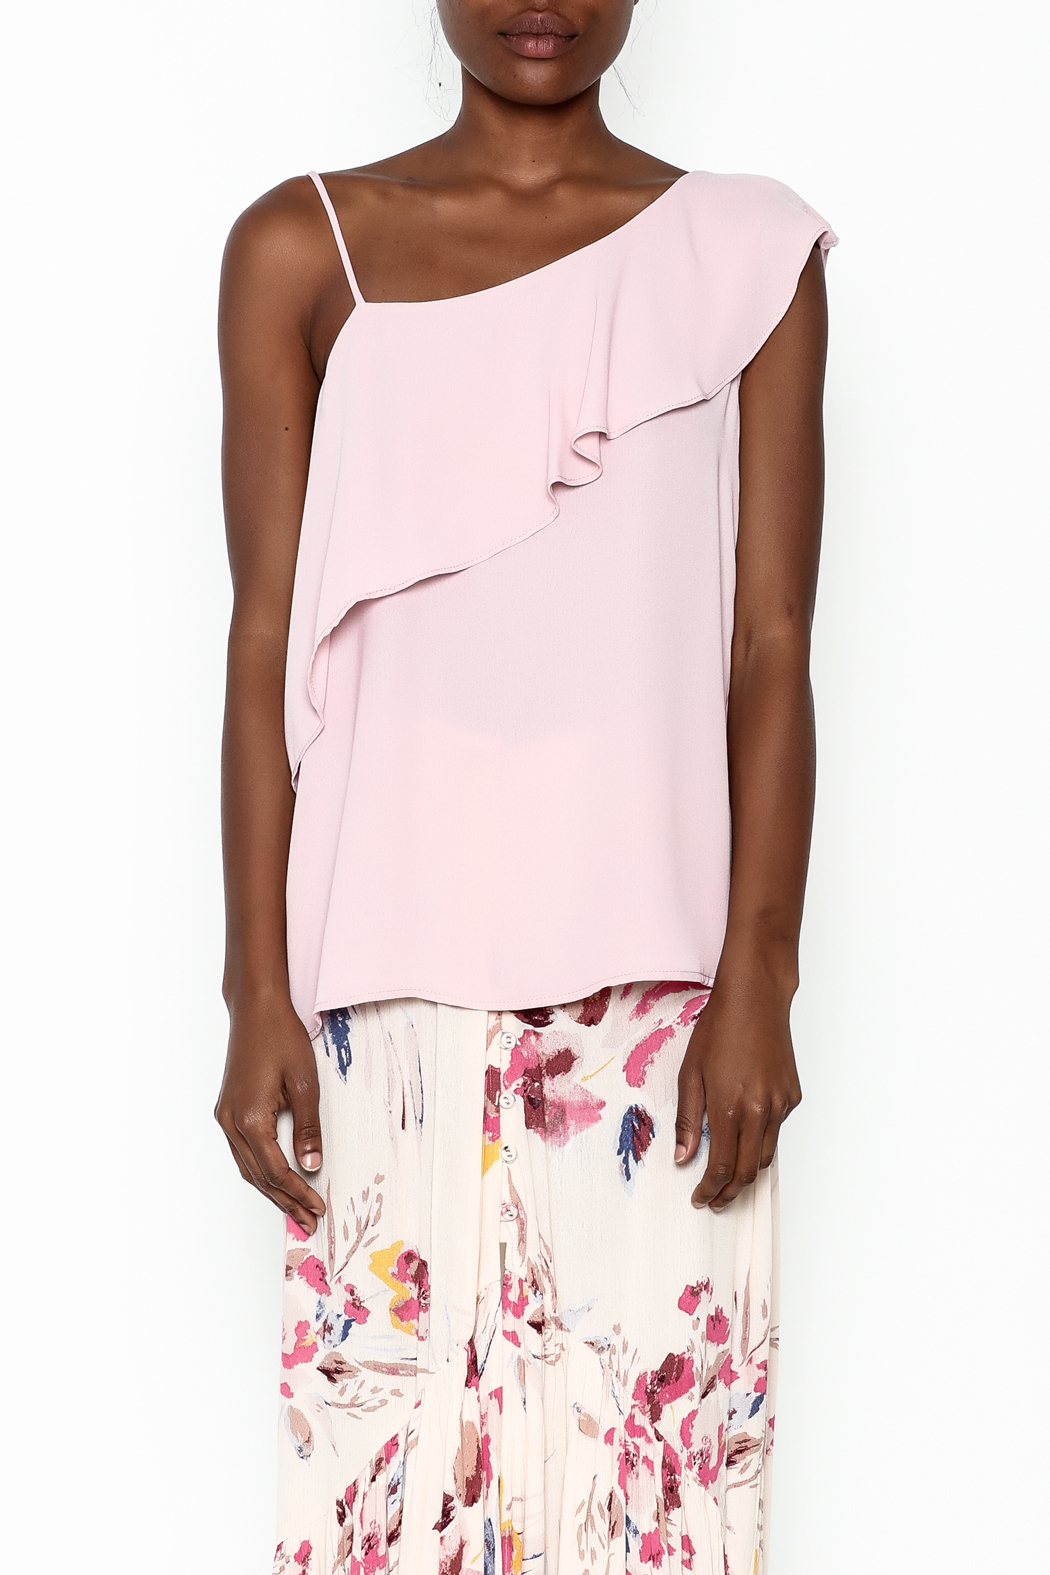 y&i clothing boutique Pink Ruffle Top - Main Image